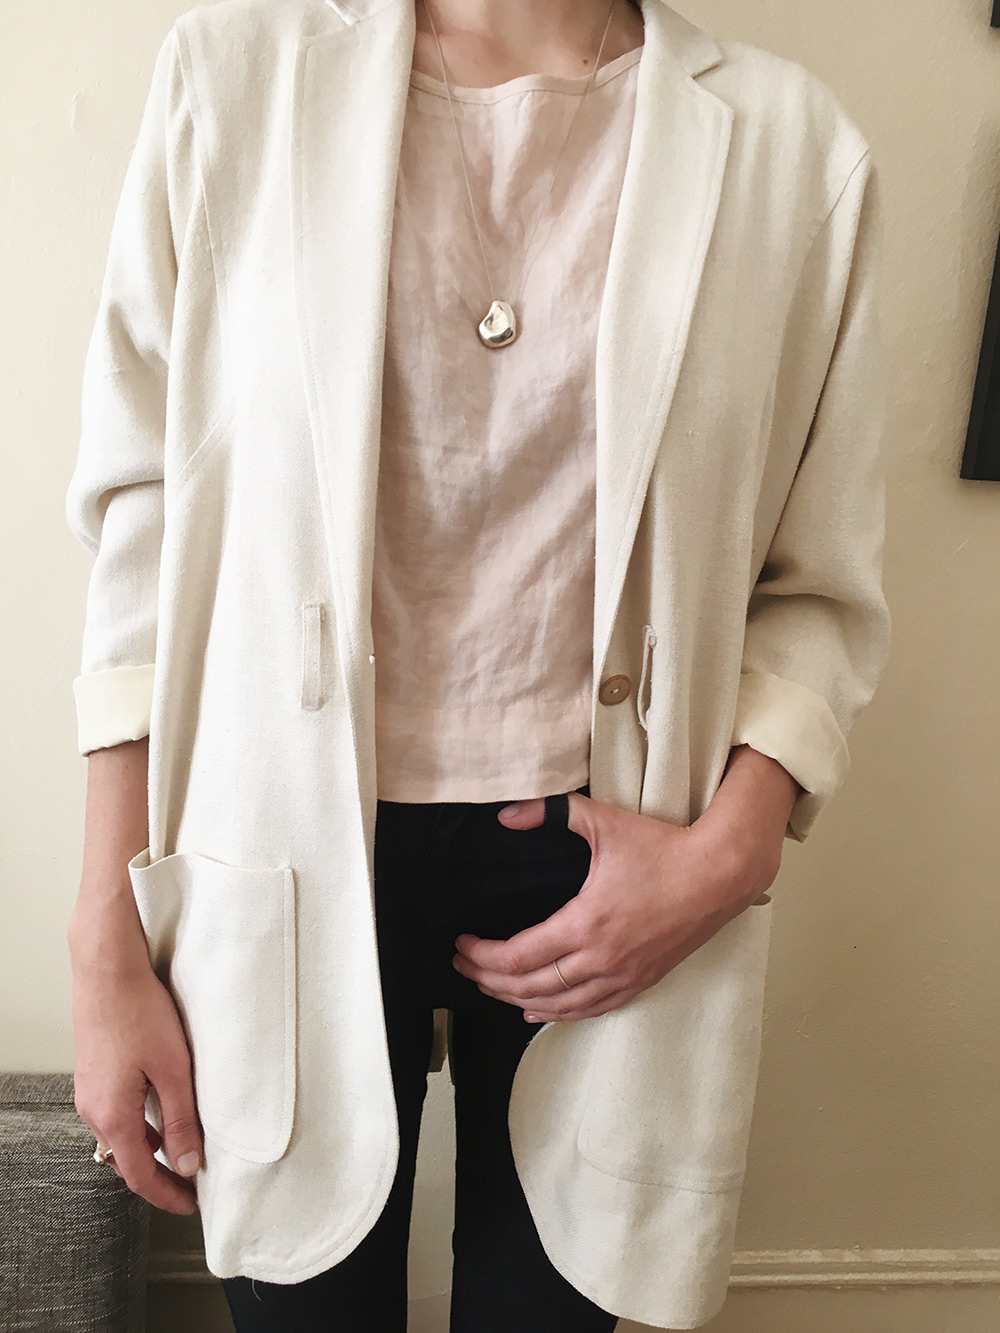 House Dress NY Slit Back Blazer, Ilana Kohn Kate Crop, Industry Standard Margot Highrise, FARIS Nug Necklace